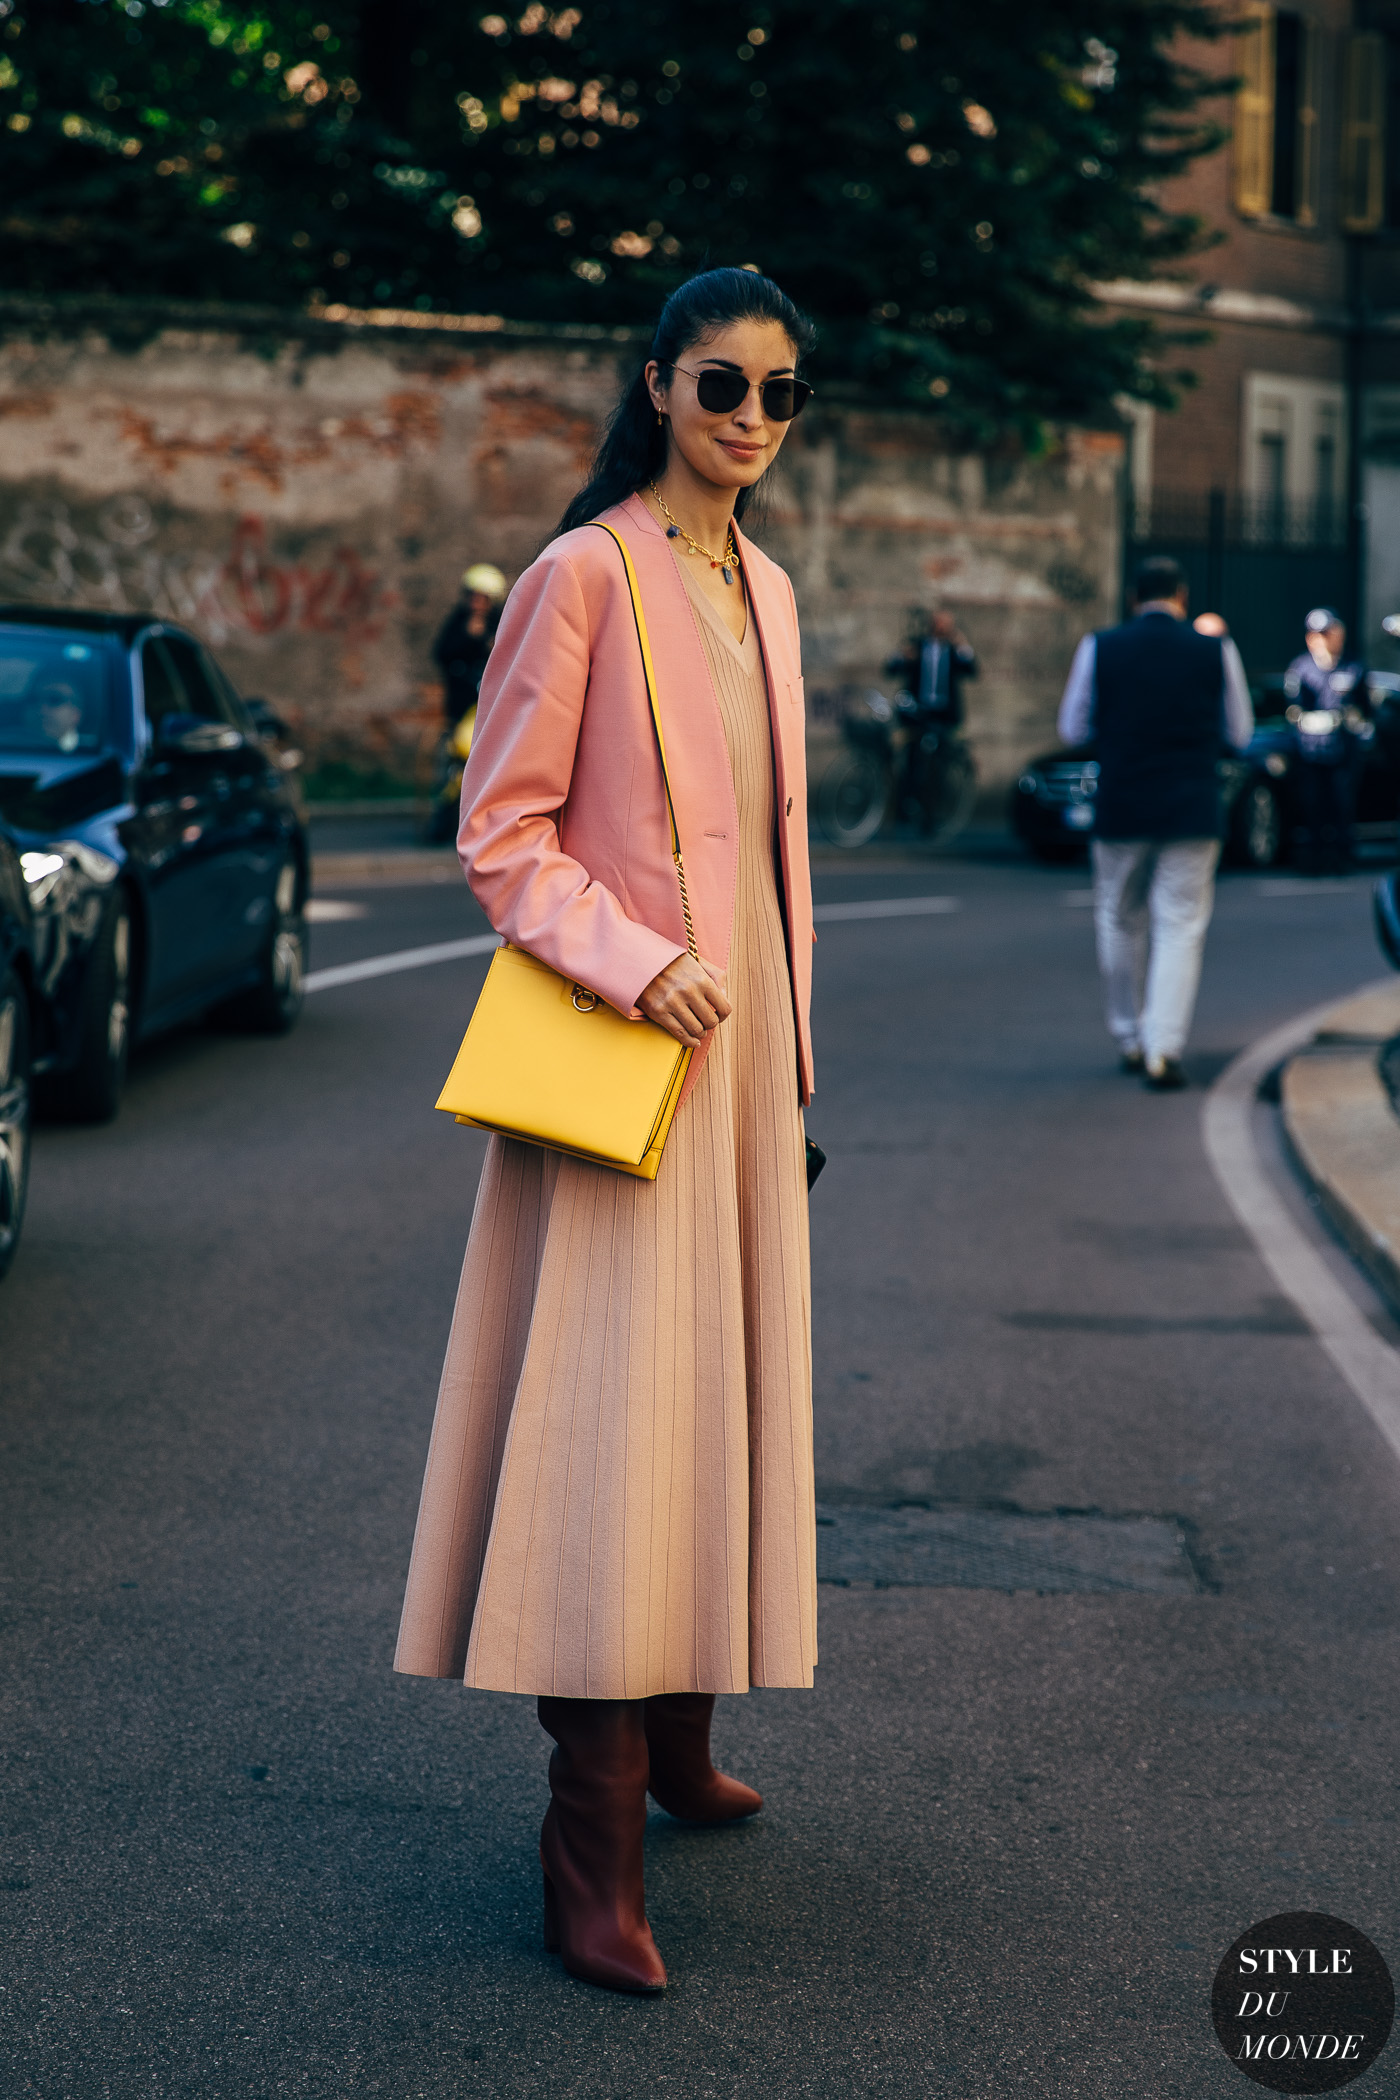 Spring Things | Colour Inspiration: Pink & Pastels for March Days